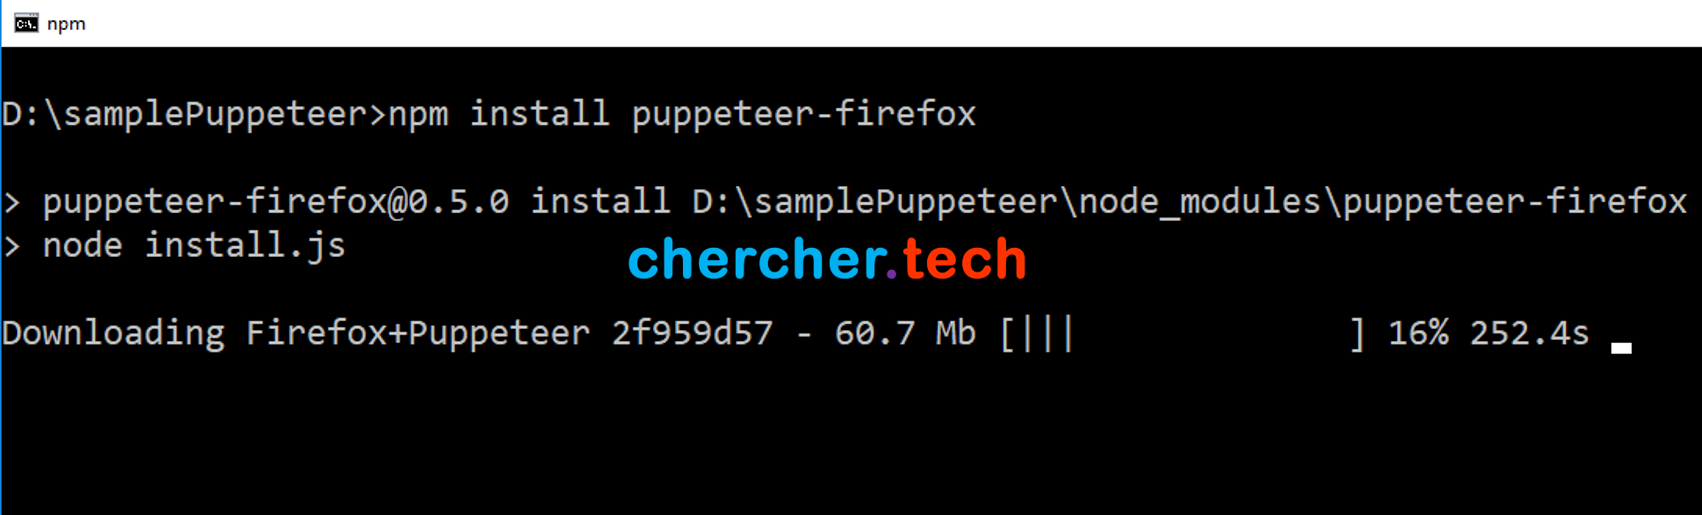 Puppeteer with Firefox